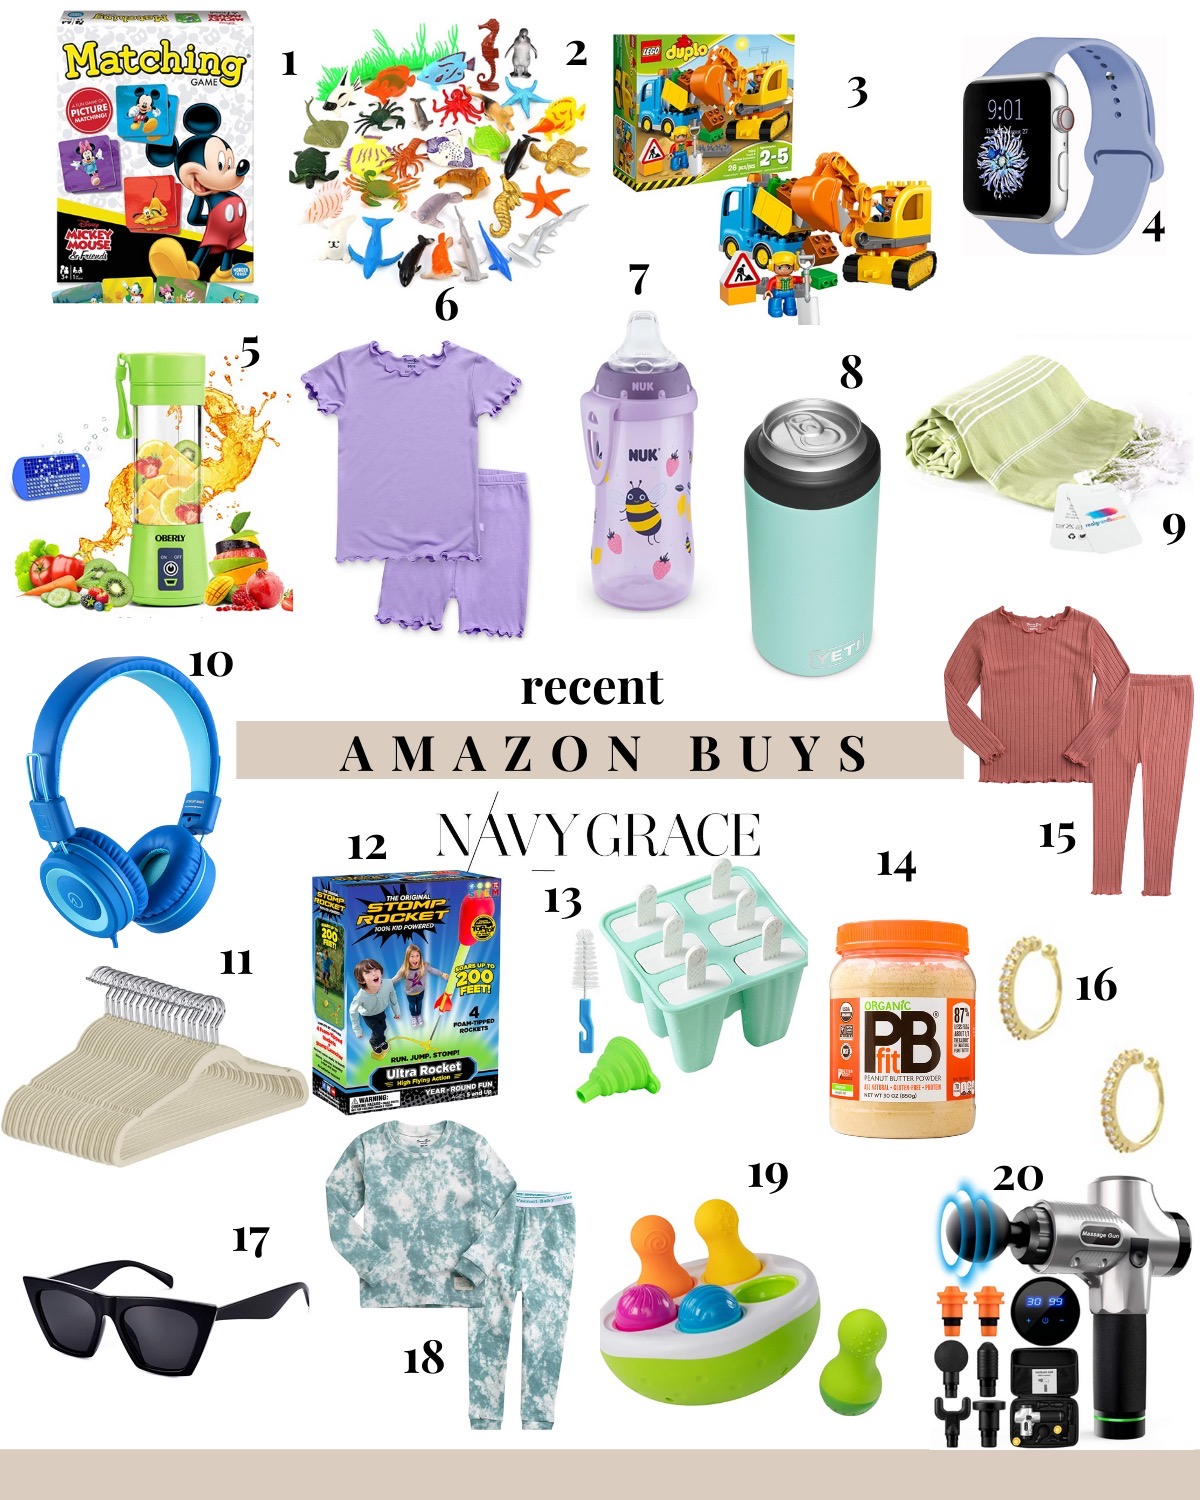 Amazon Favorites by popular San Diego life and style blog, Navy Grace: collage image of white felt hangers, black sunglasses, deep tissue massager, PB fit powder, gold hoop earrings, smart watch, kid pajama sets, sea animals, Duplo construction set, ear phones, stomp rocket, silicone popsicle mold, Yeti colster can cooler, and a turkish towel.